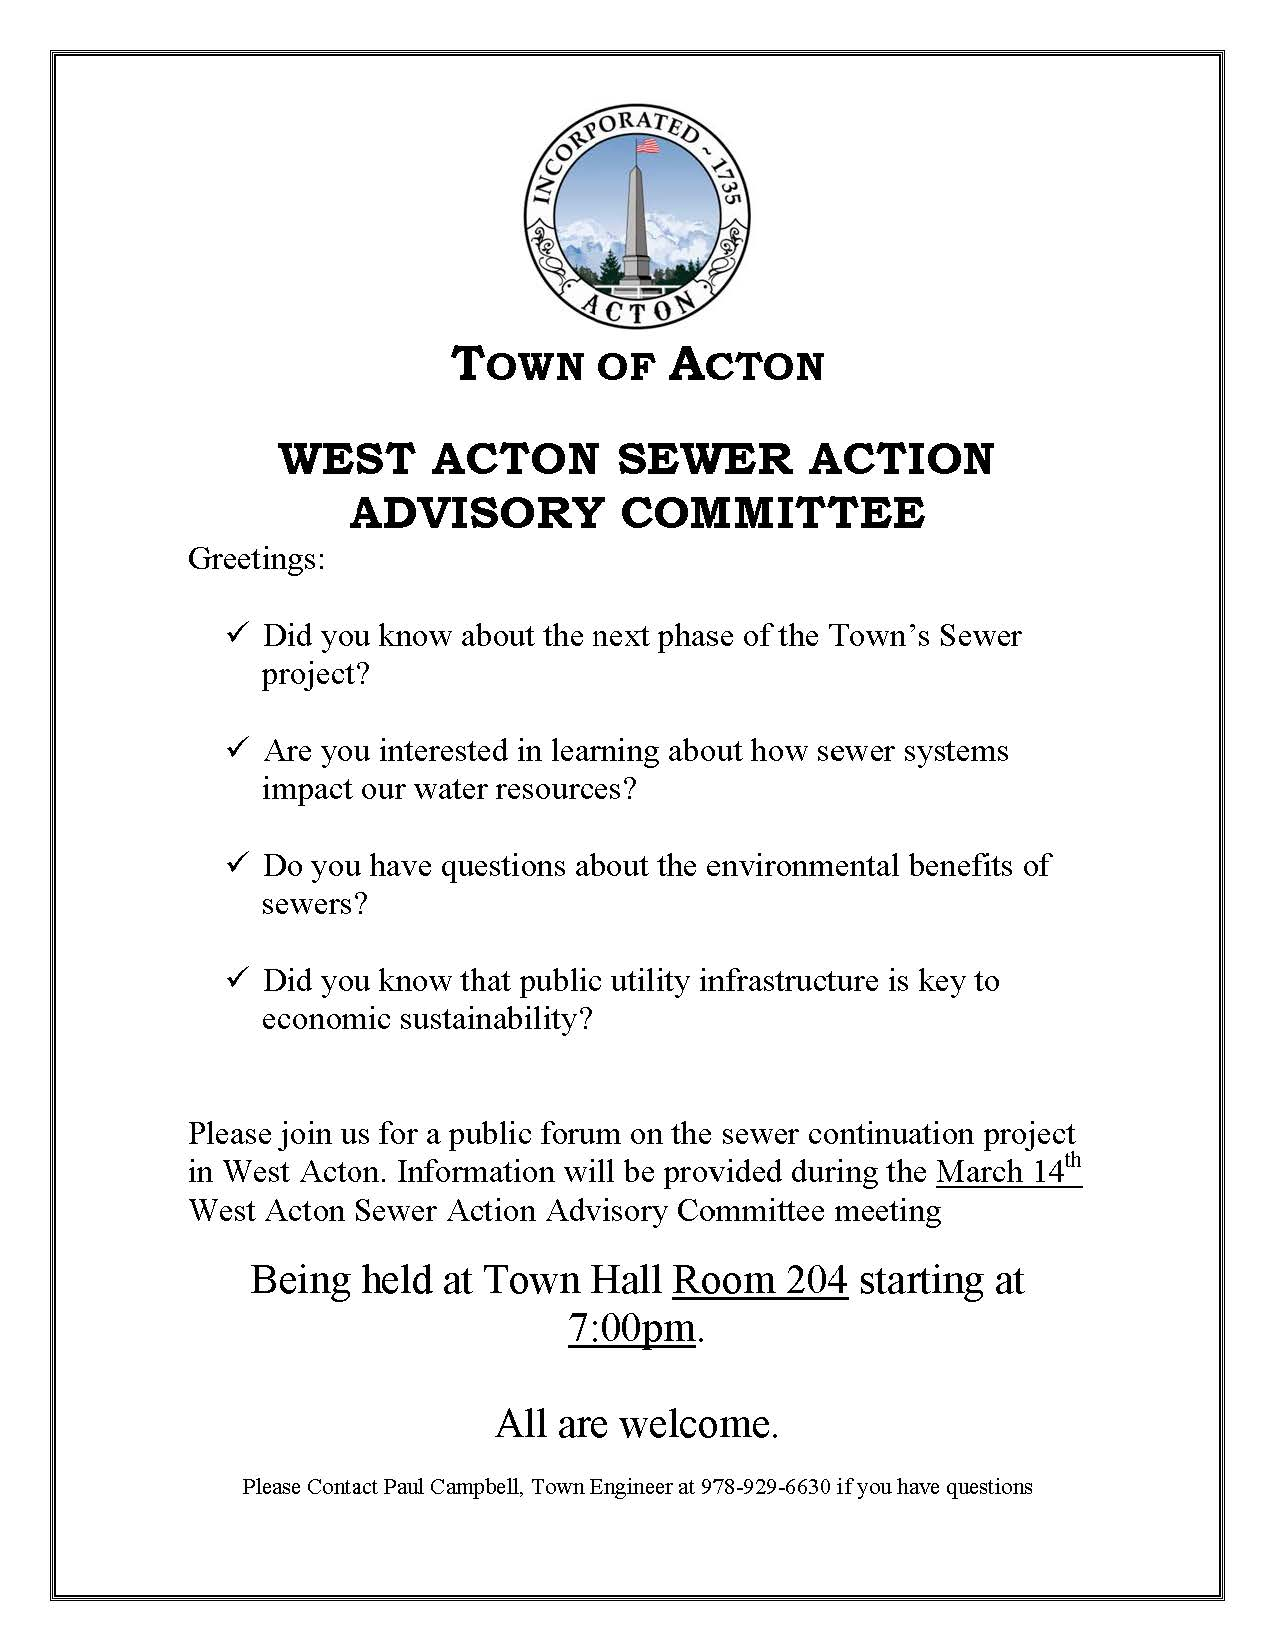 West Acton Sewer Forum Notice_ All Boards_Committees